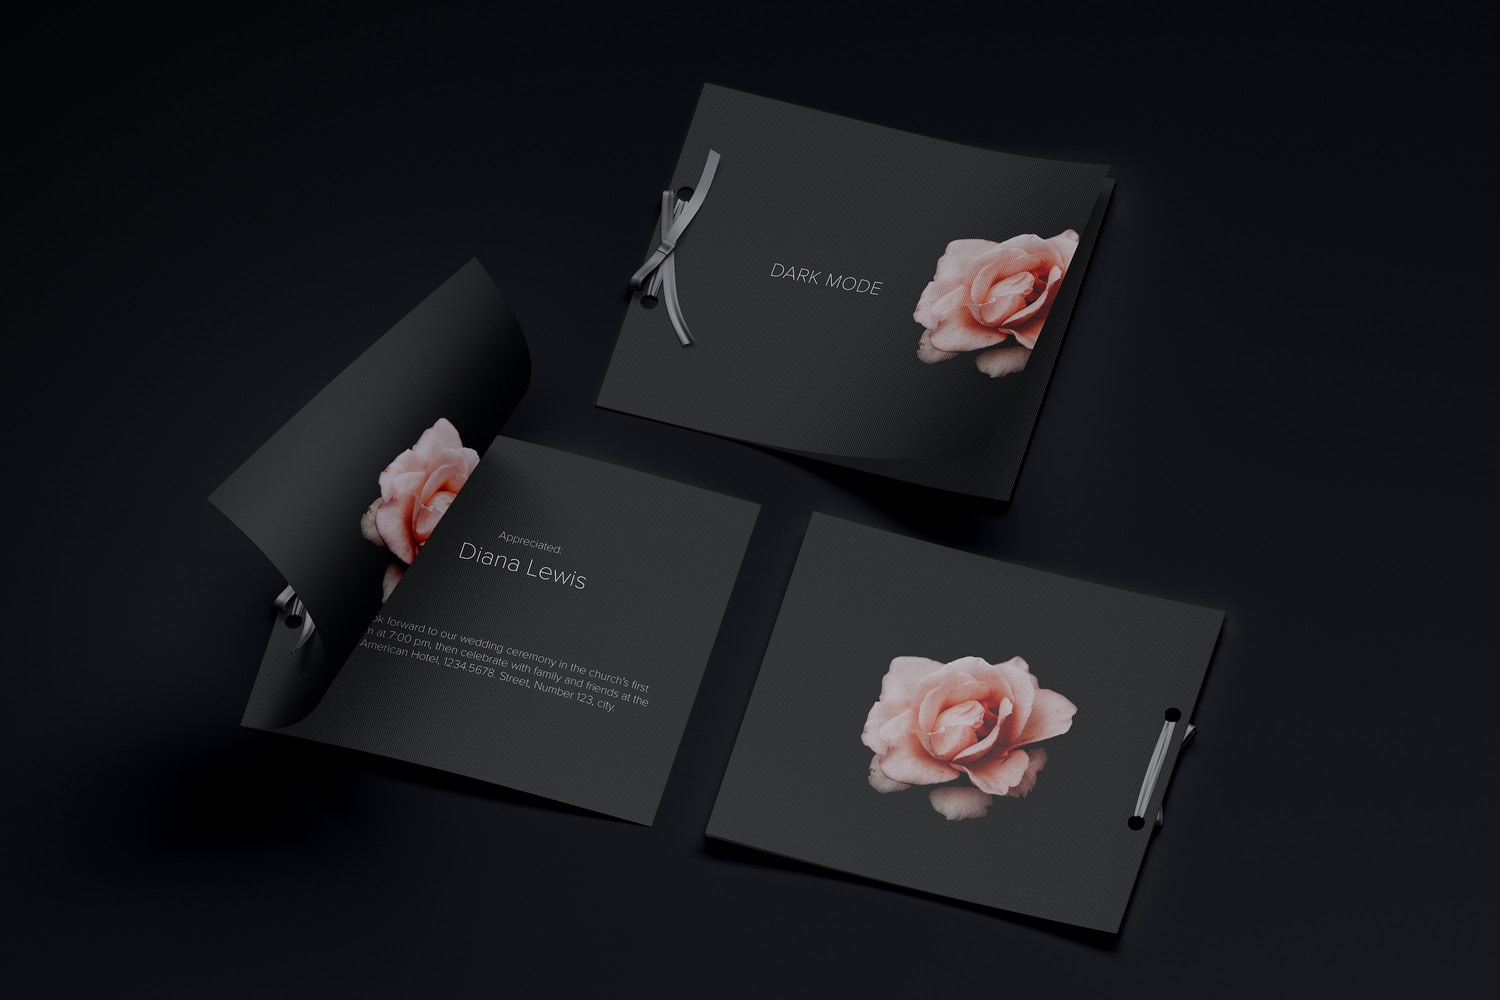 Wedding Card Mockup, Covers and Inner Pages (6) by Original Mockups on Original Mockups